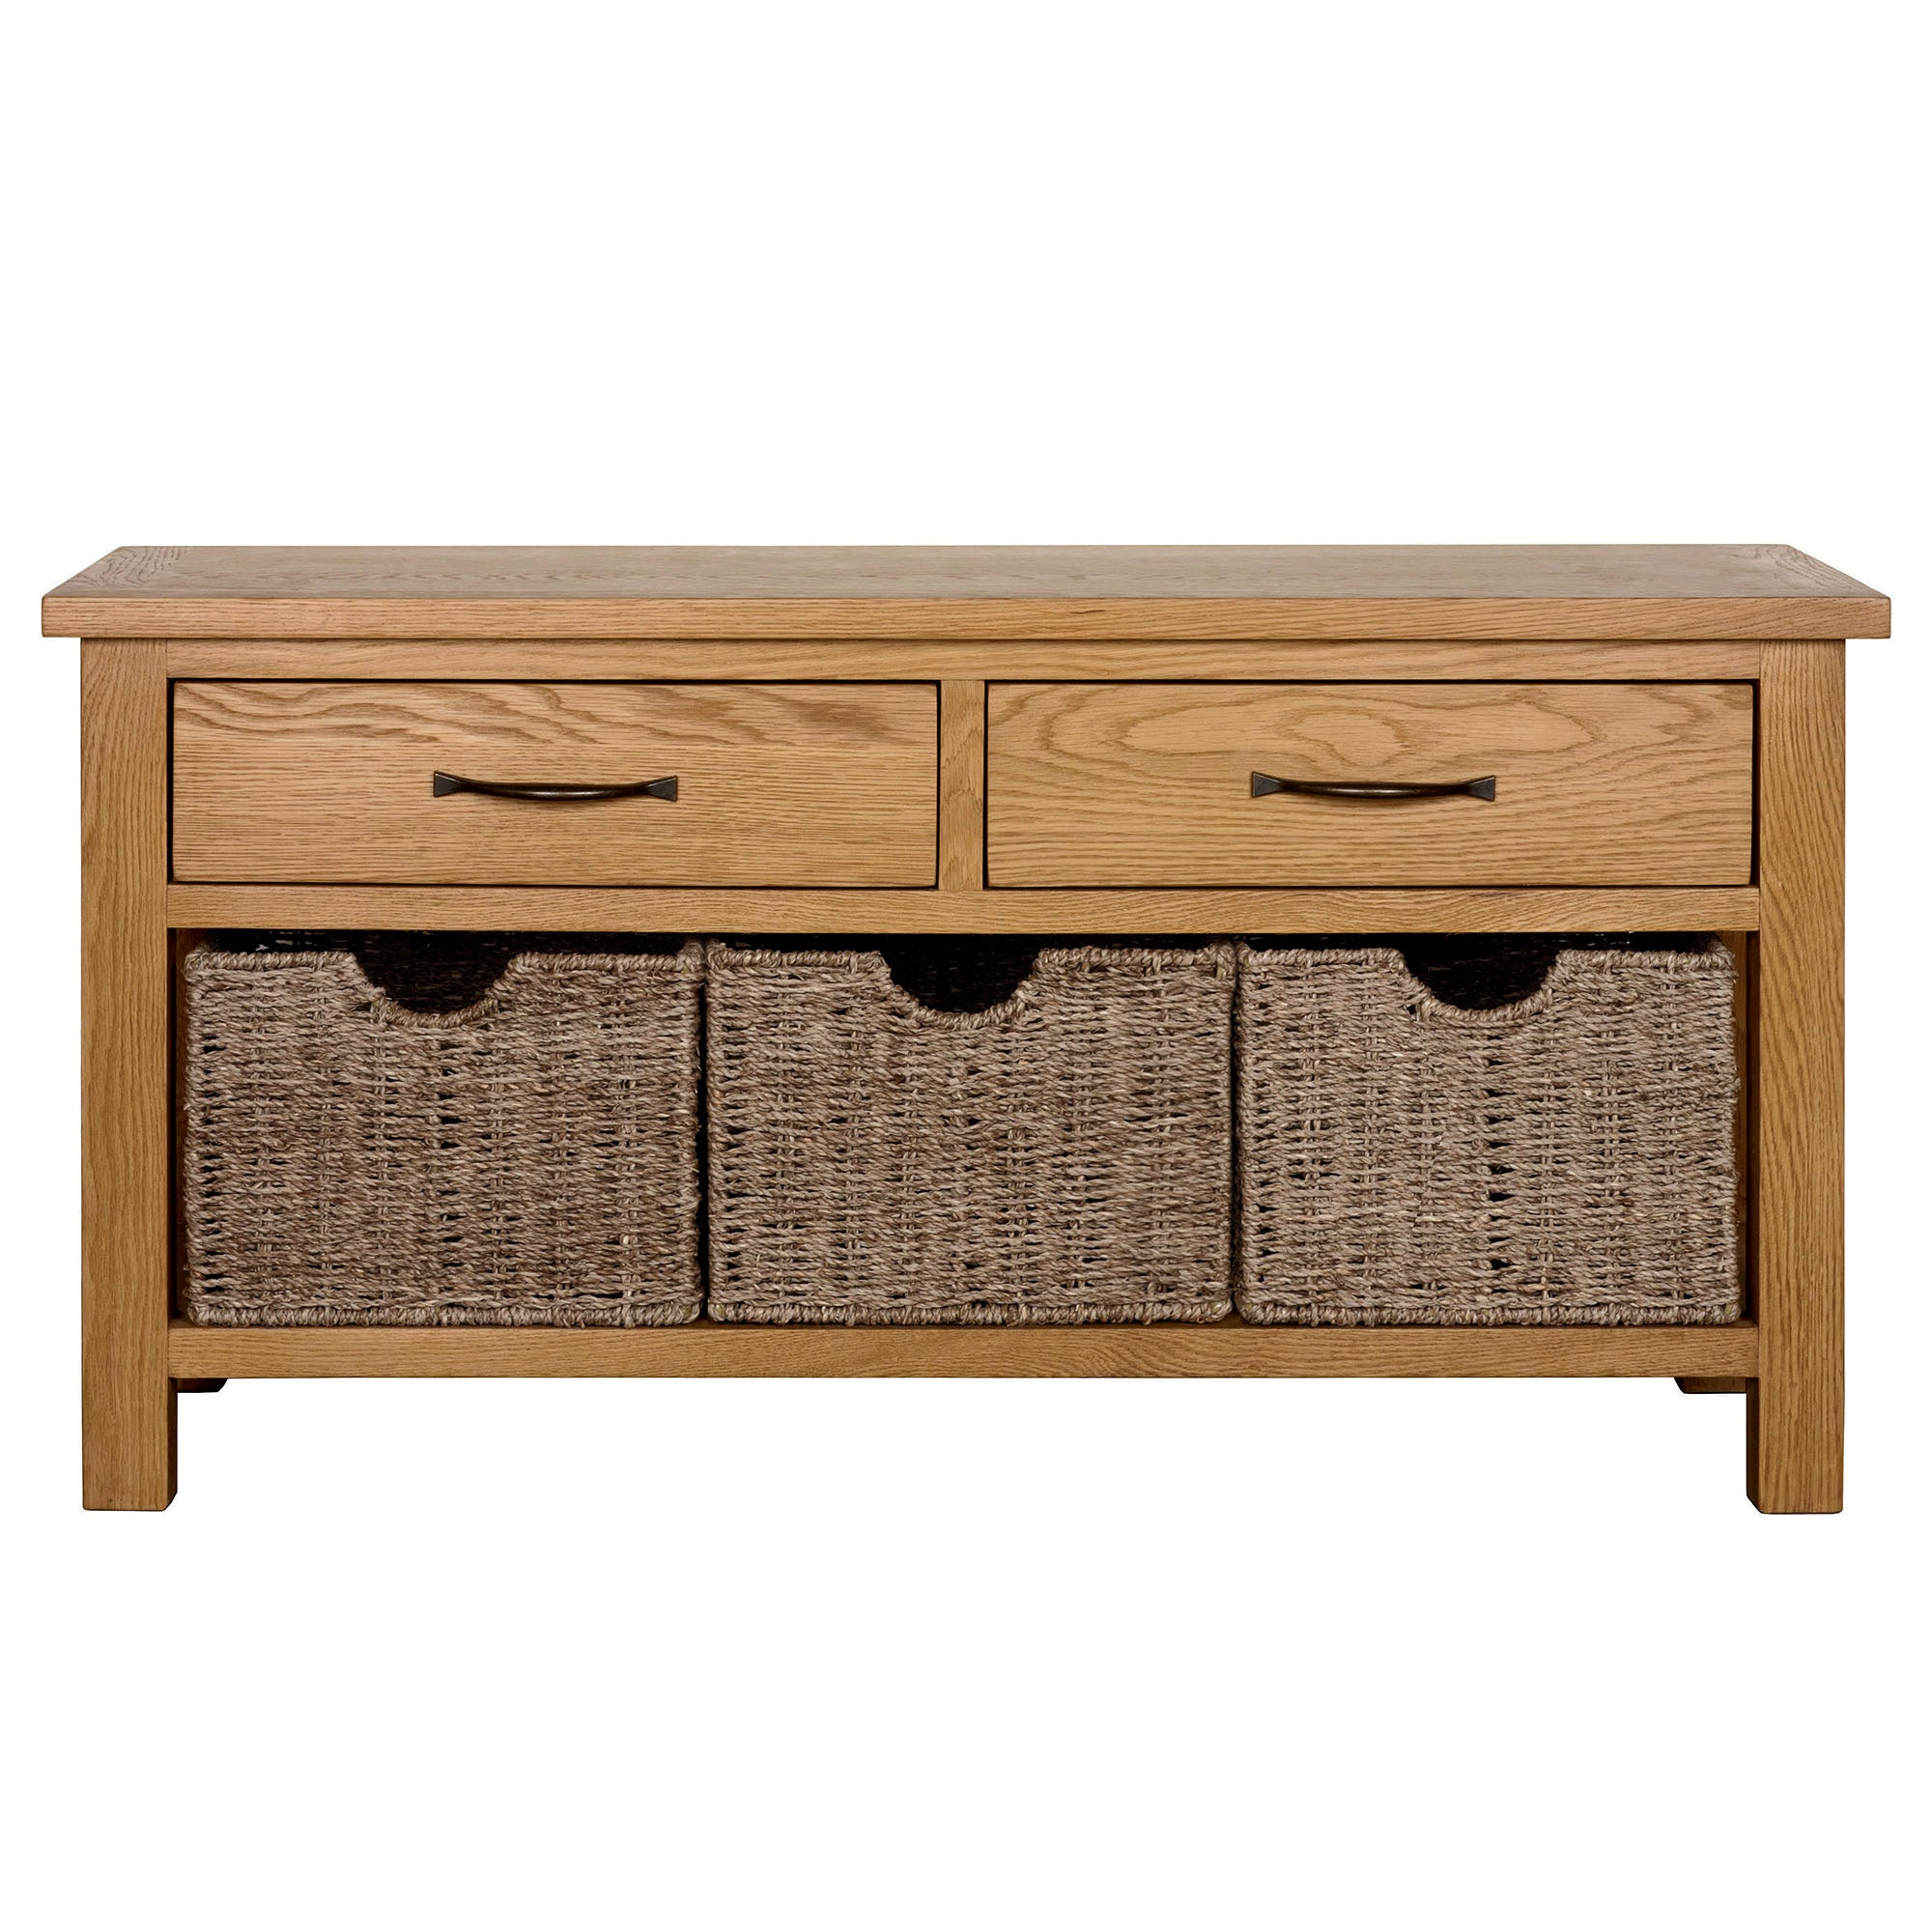 Buy Cheap Oak Storage Bench Compare Furniture Prices For Best Uk Deals